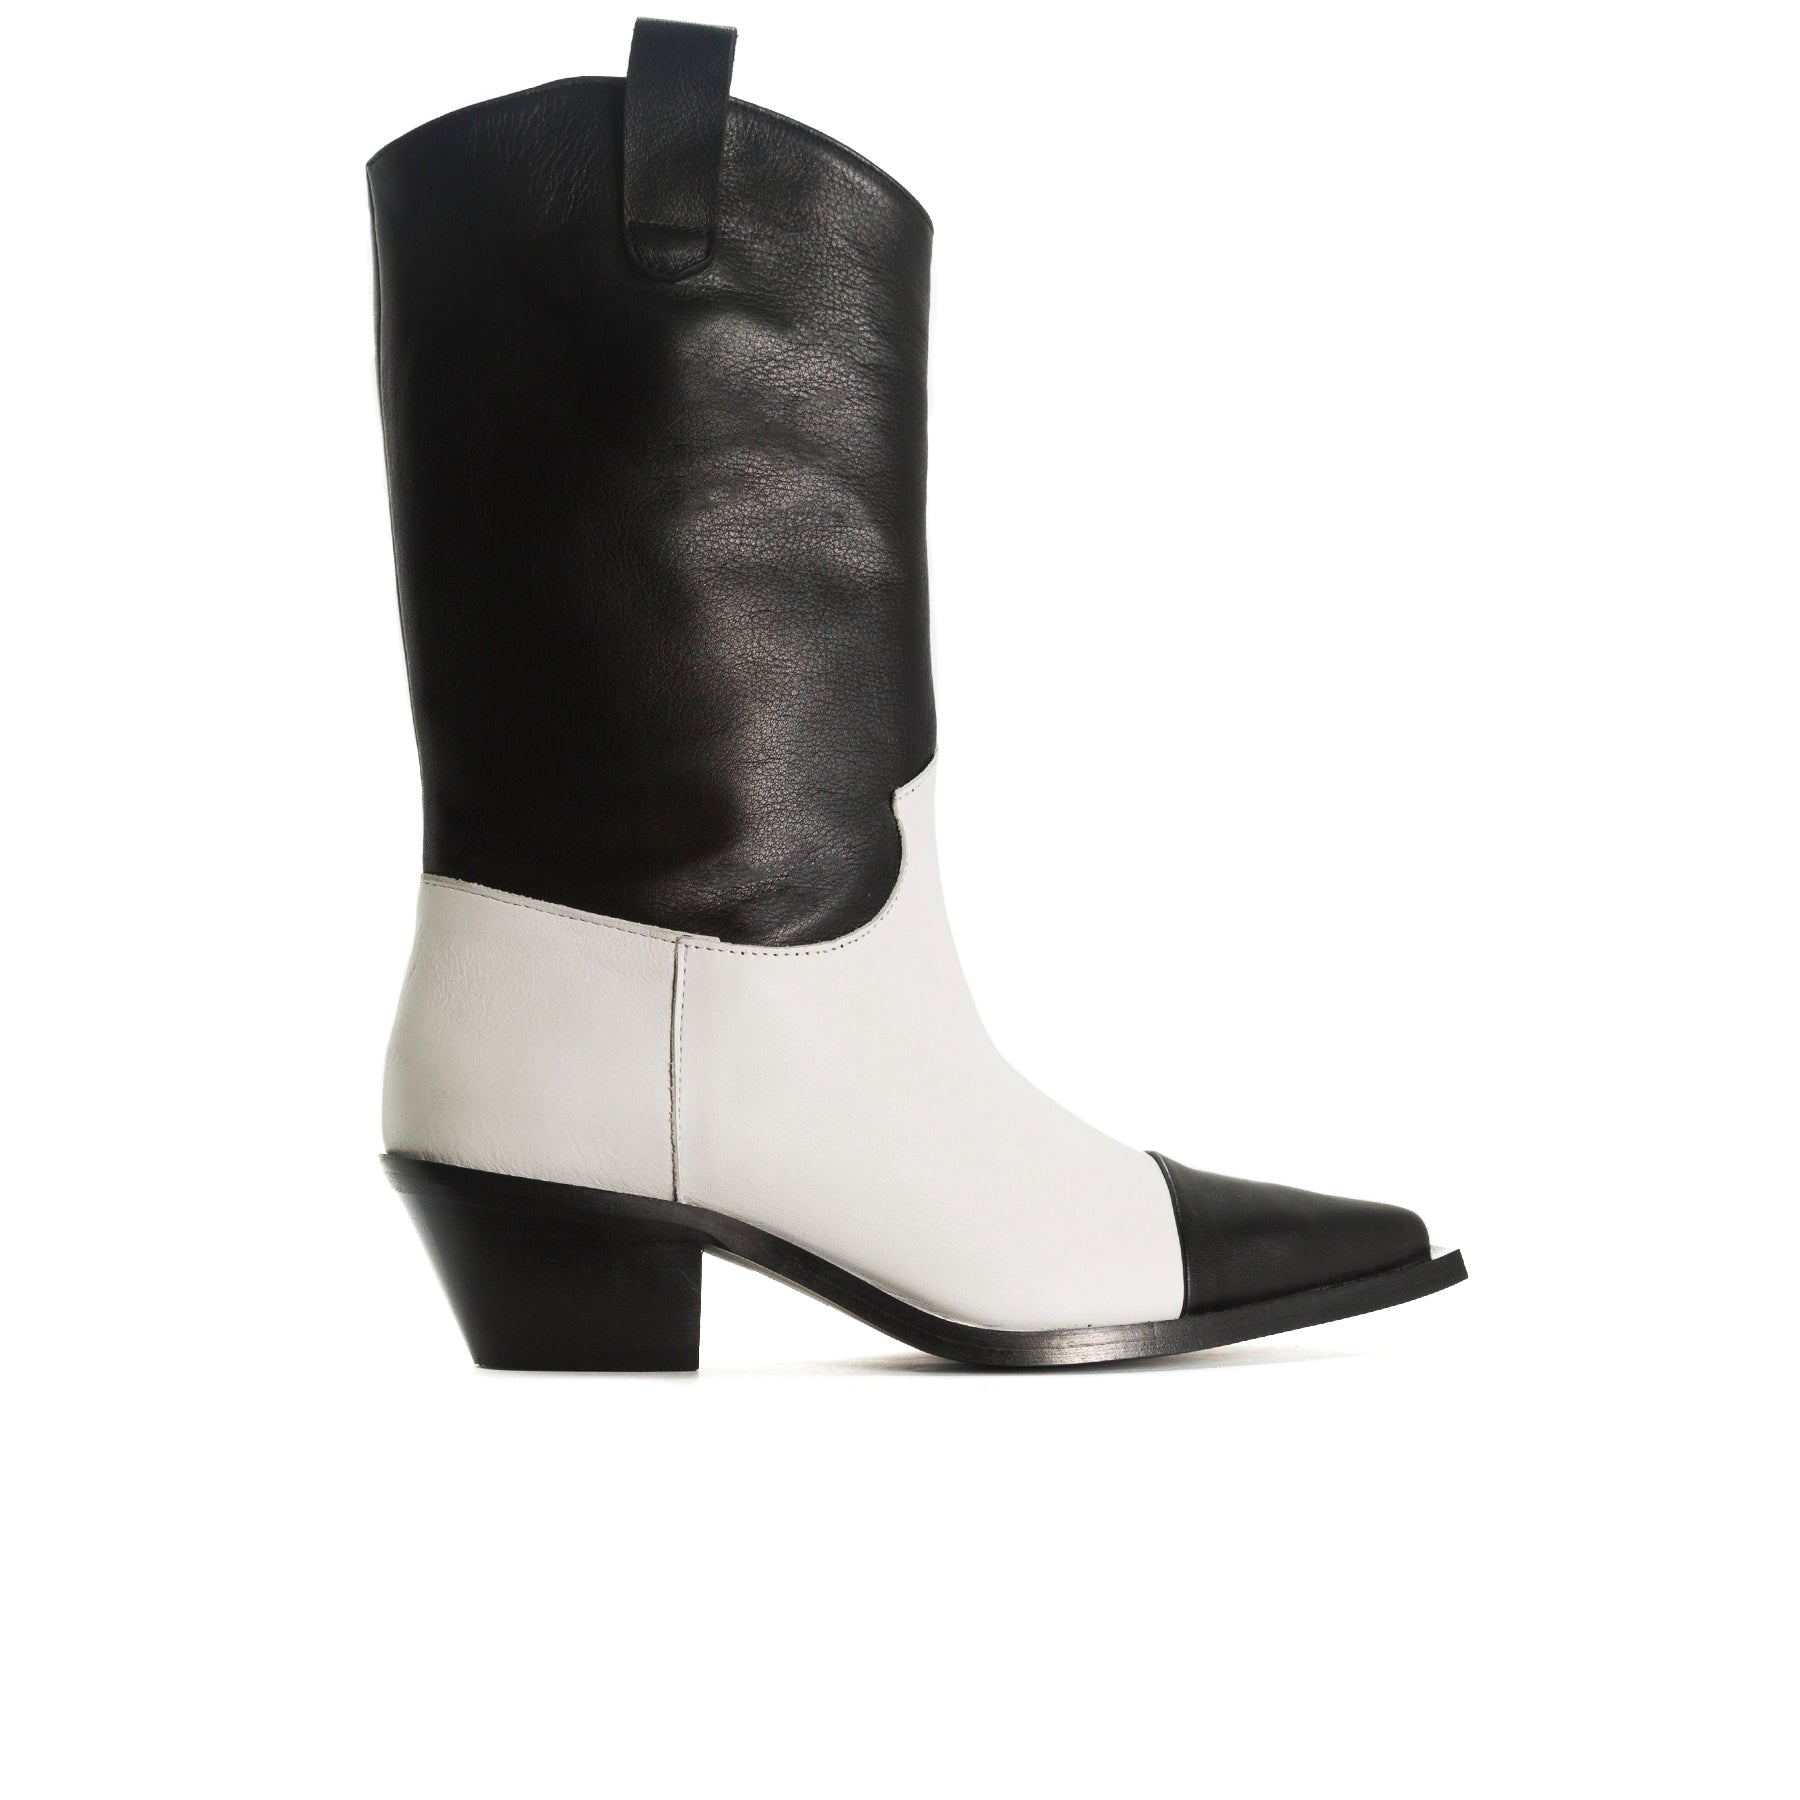 Annamaria Black&White Leather Booties